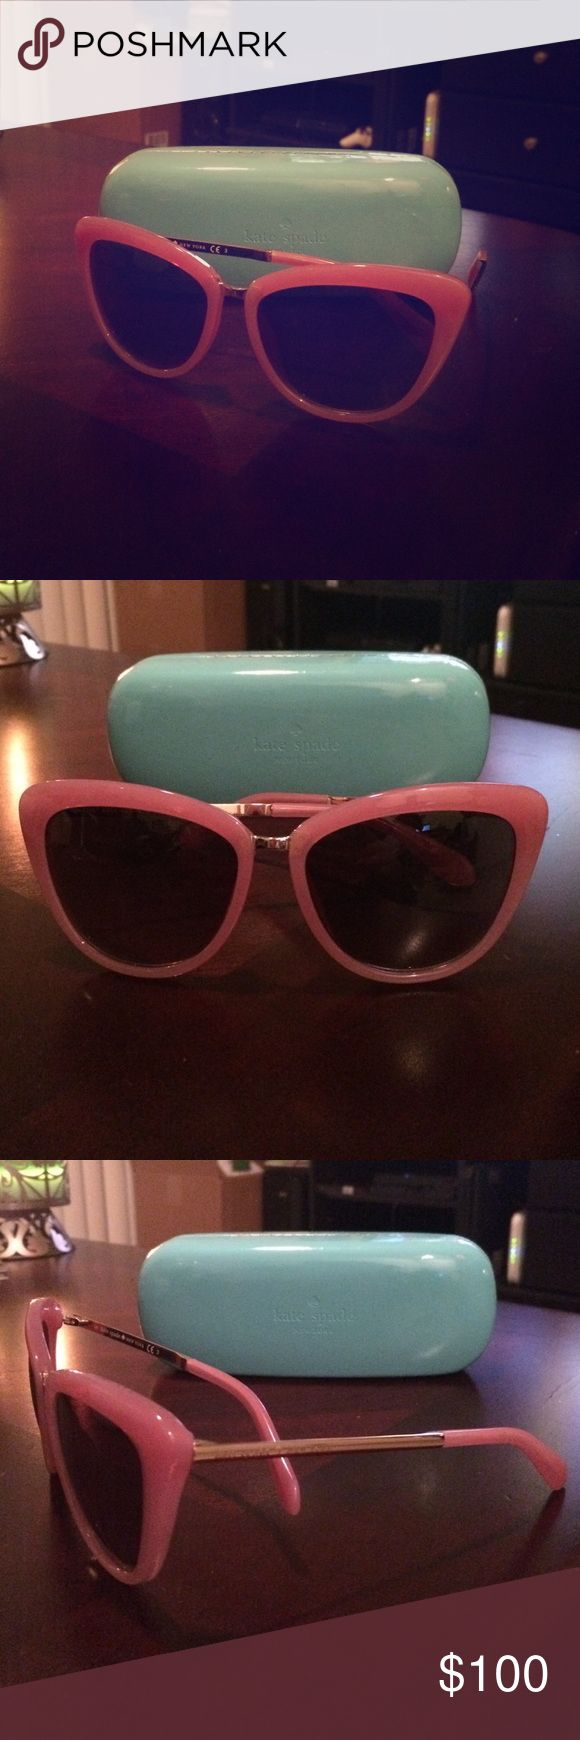 New Kate Spade Pink Cissy Sunglasses New Kate Spade Pink Cissy Sunglasses. Never worn, comes with case. kate spade Accessories Sunglasses